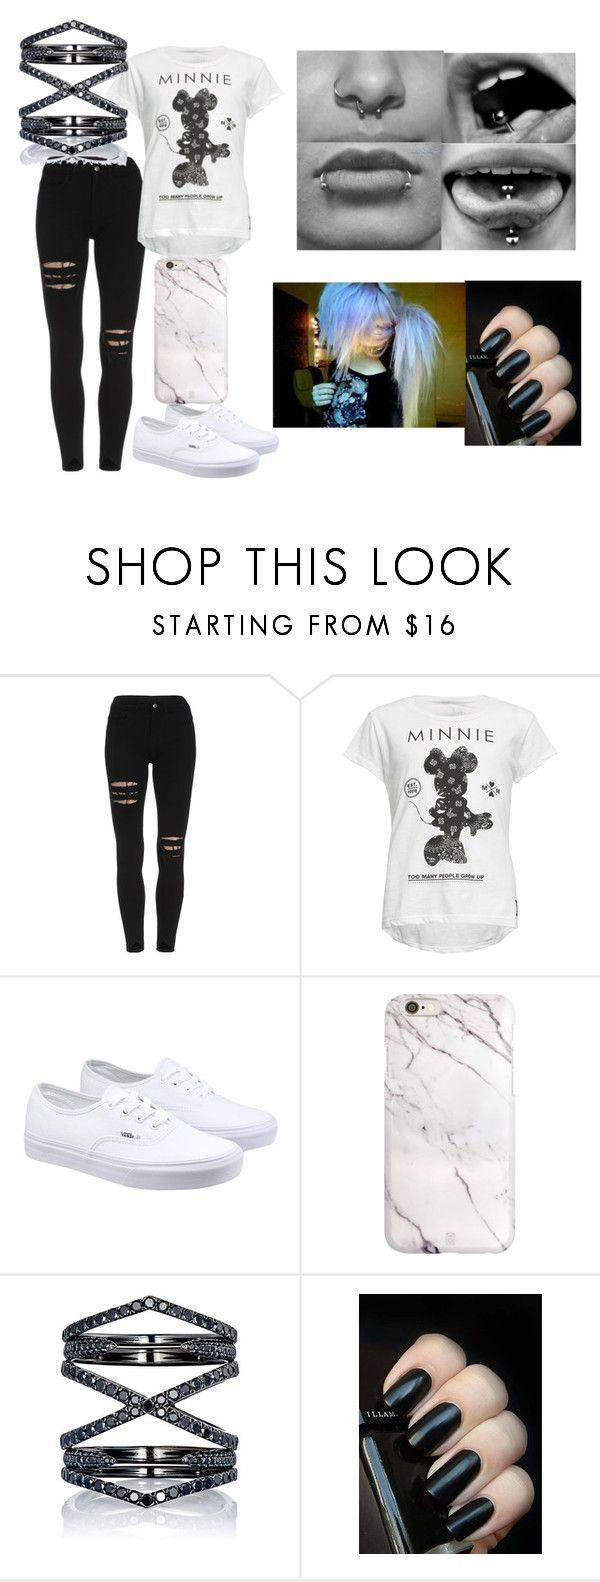 """""""Shooting GMM with Rhett and link"""" by that-punk-girl ❤ liked on Polyvore featuring Neff, Vans, Eva Fehren, women's clothing, women's fashion, women, female, woman, misses and juniors"""